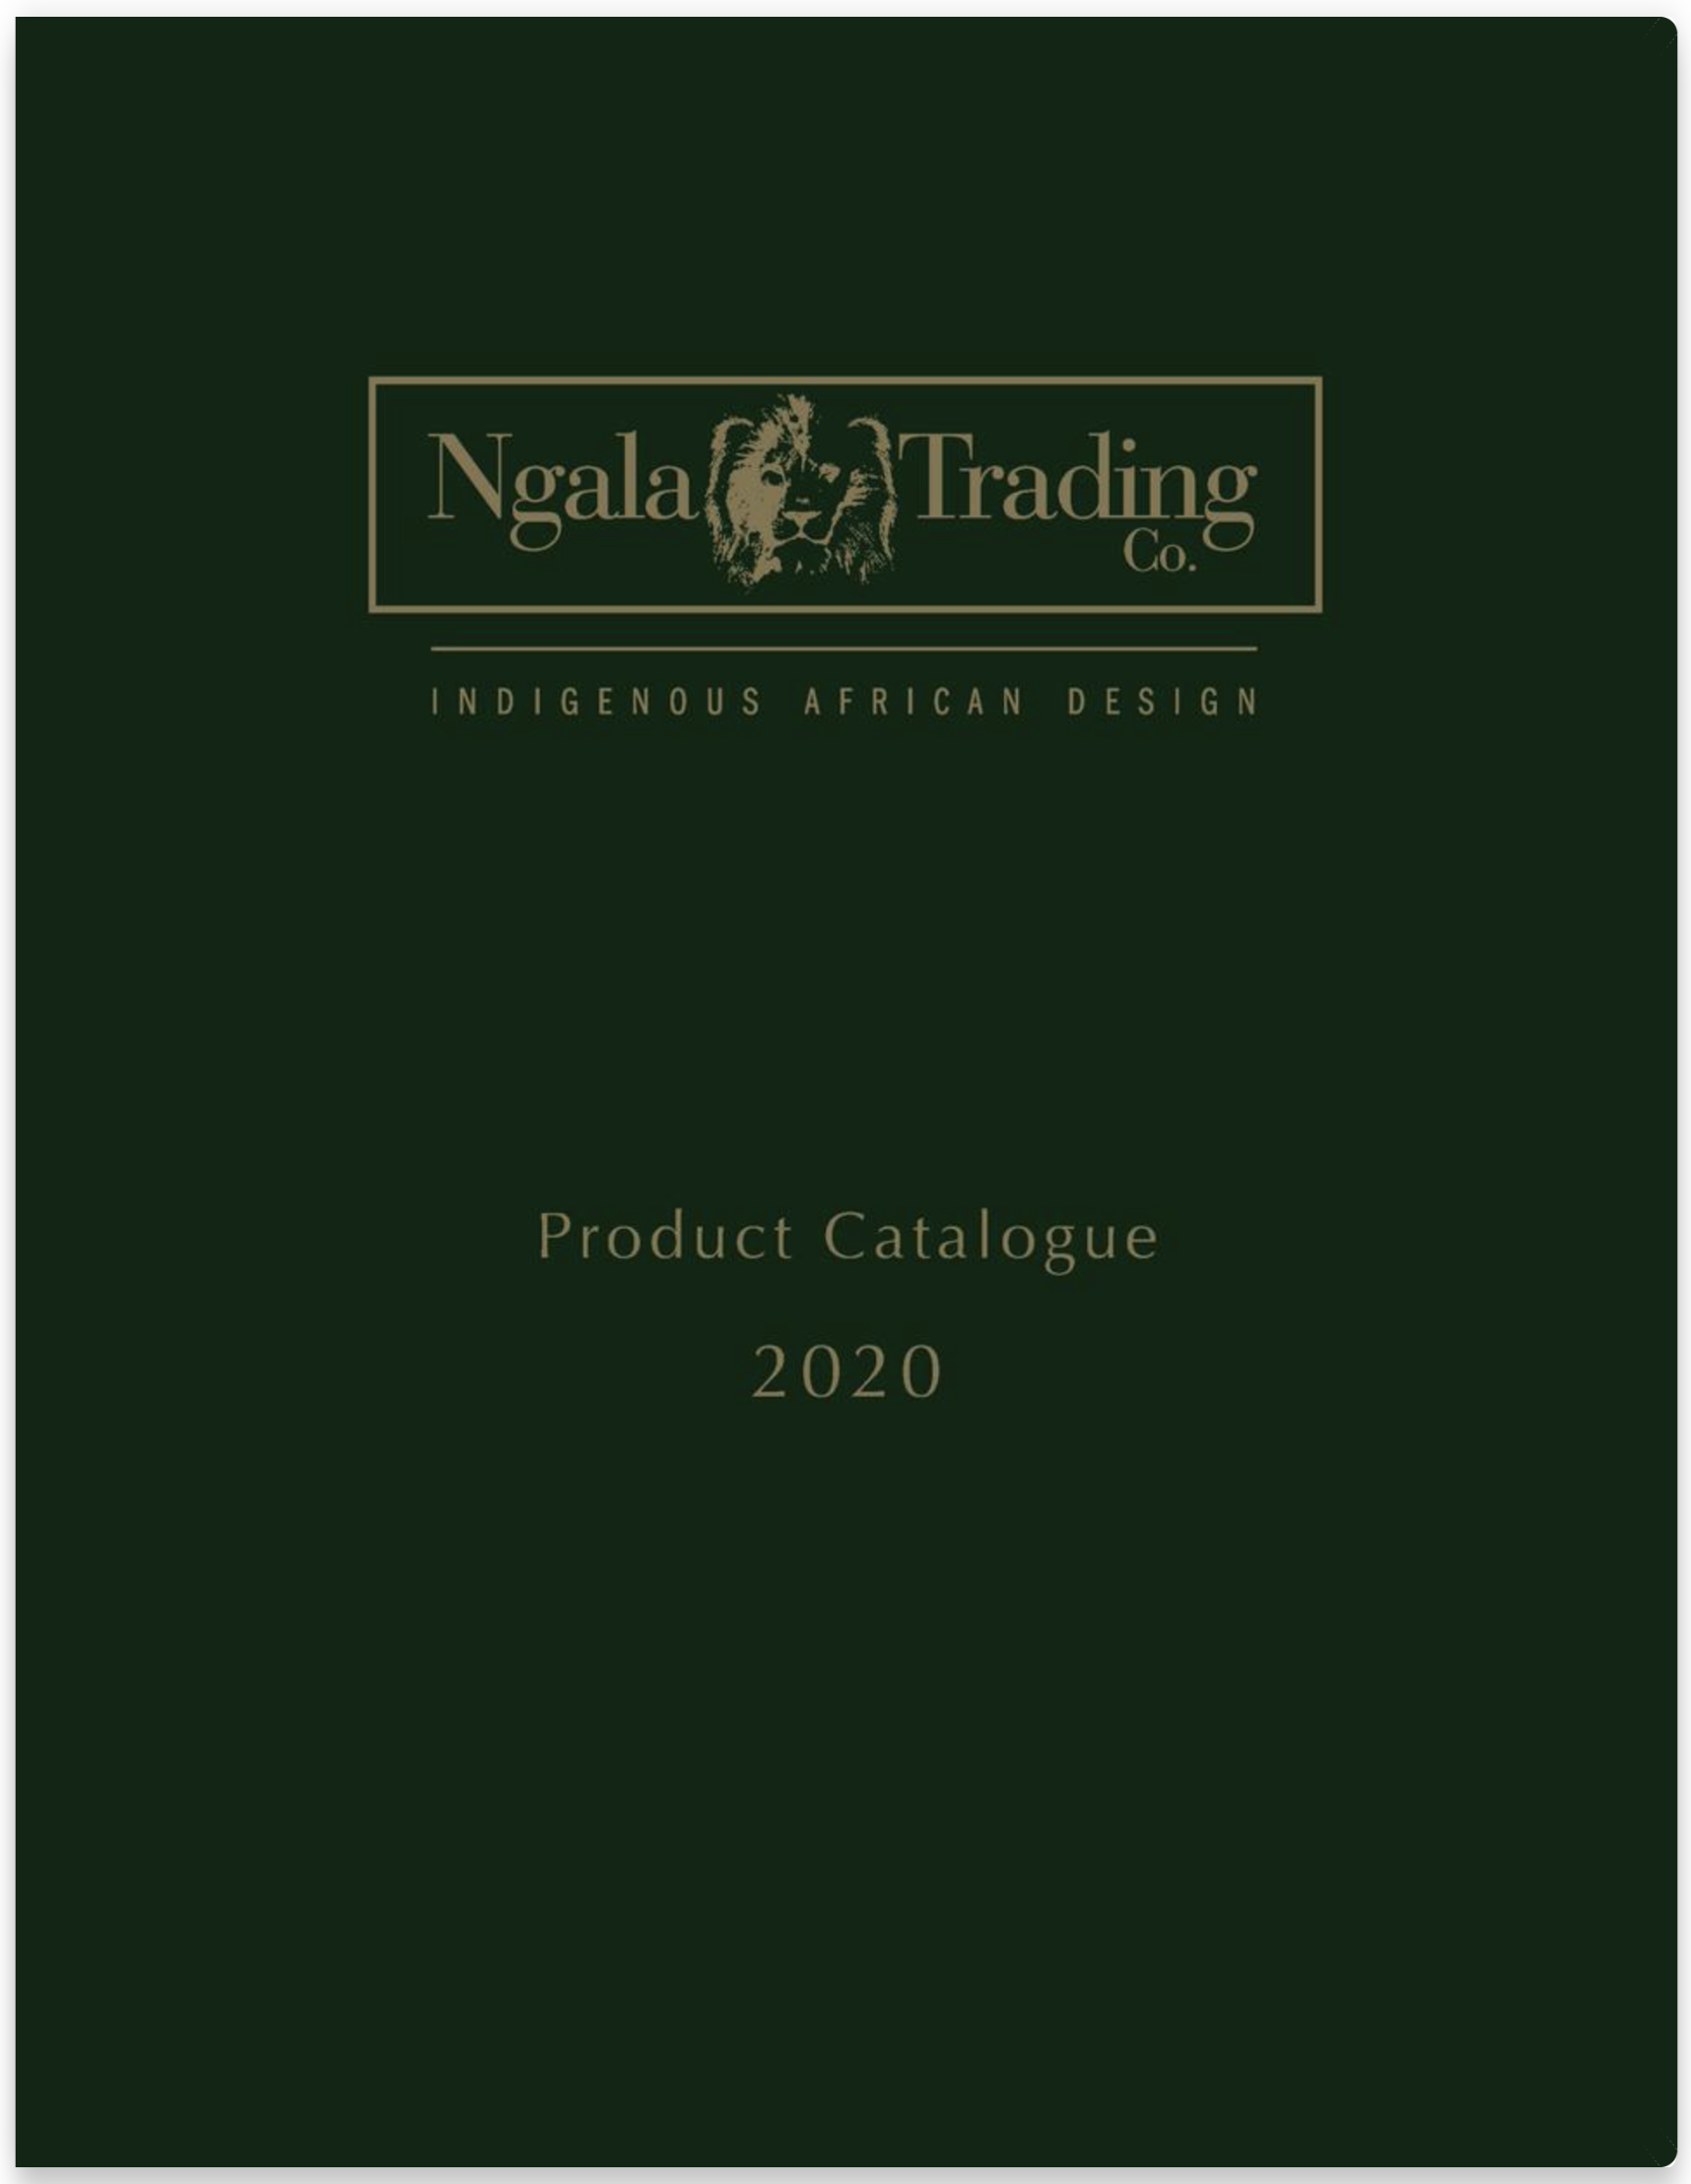 Ngala Trading_ 2020 Product Catalogue Cover